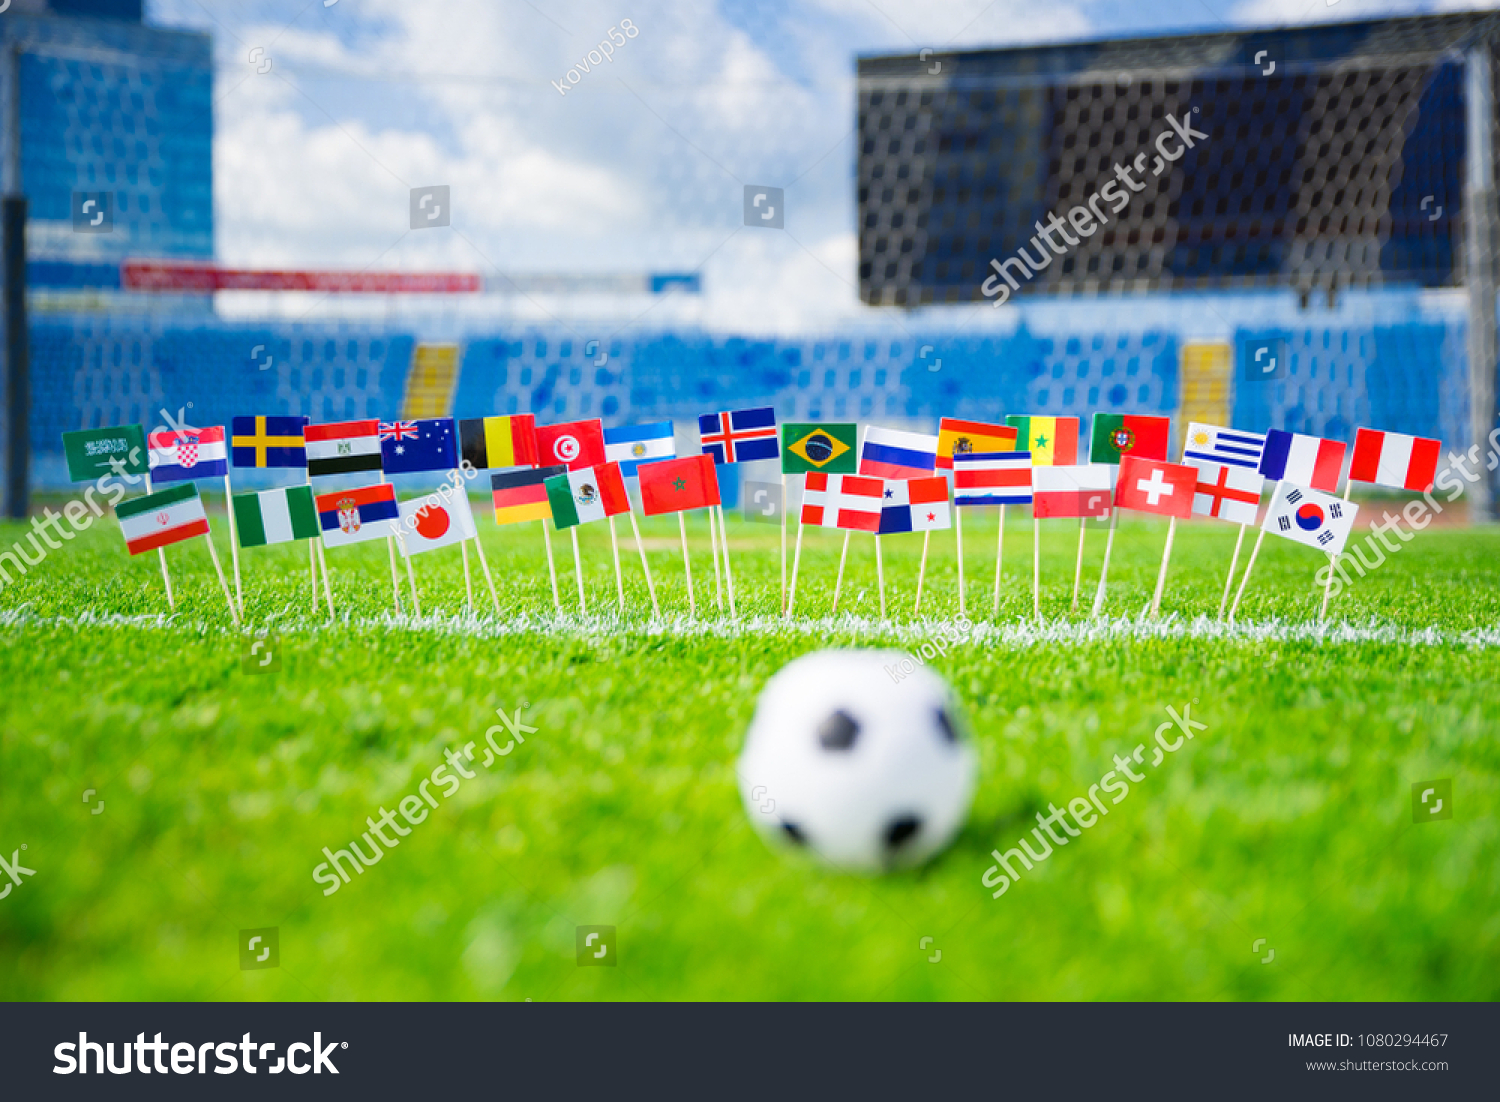 MOSCOW, RUSSIA - APRIL, 24, 2018: All nations flag of FIFA Football World Cup 2018 in Russia. Fans support concept photo. #1080294467